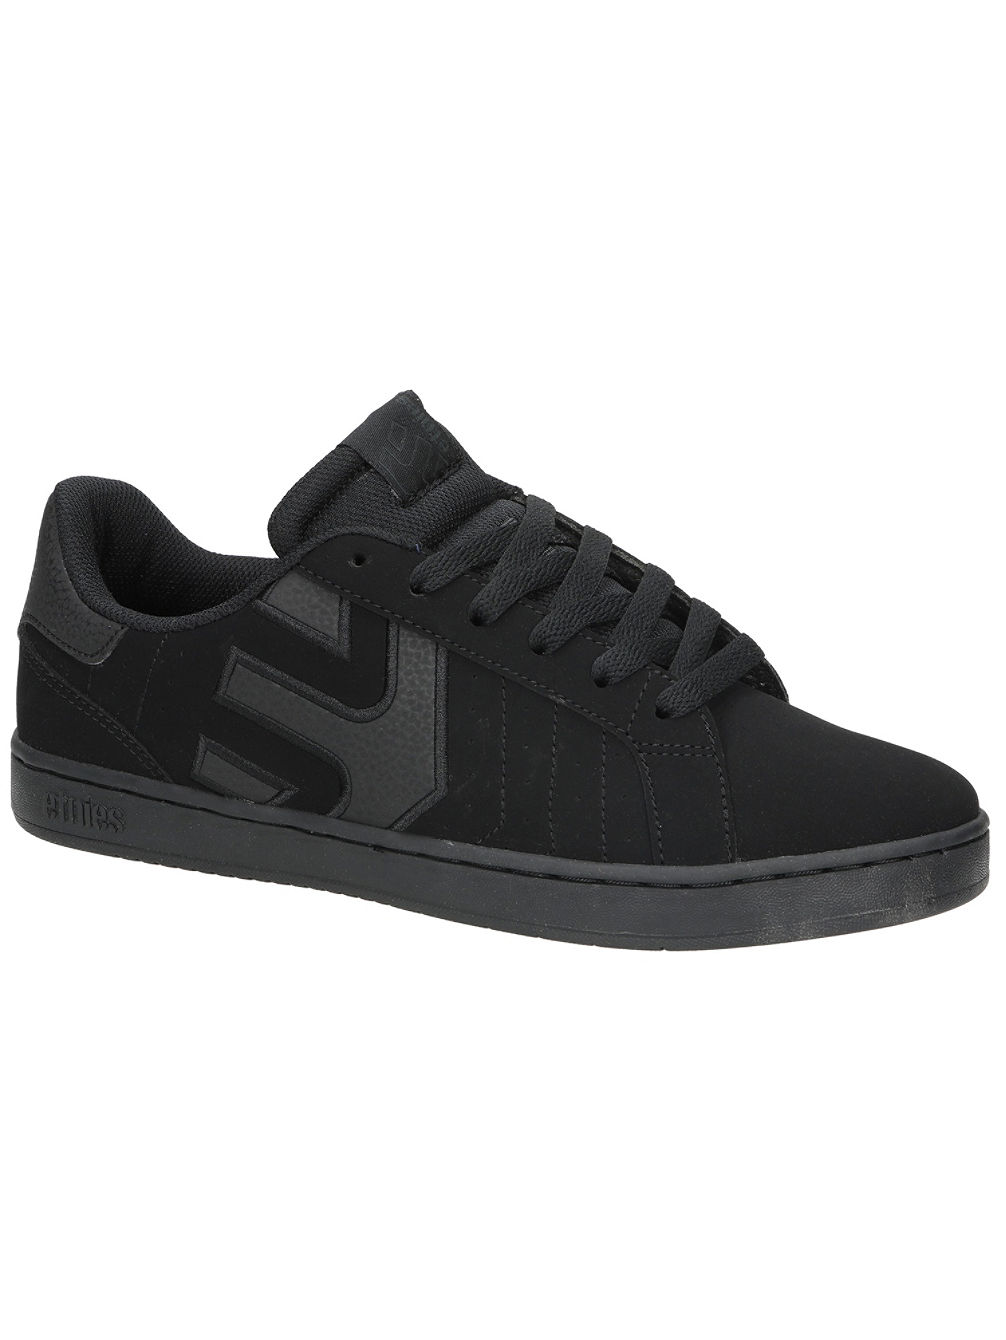 Fader LS Sneakers